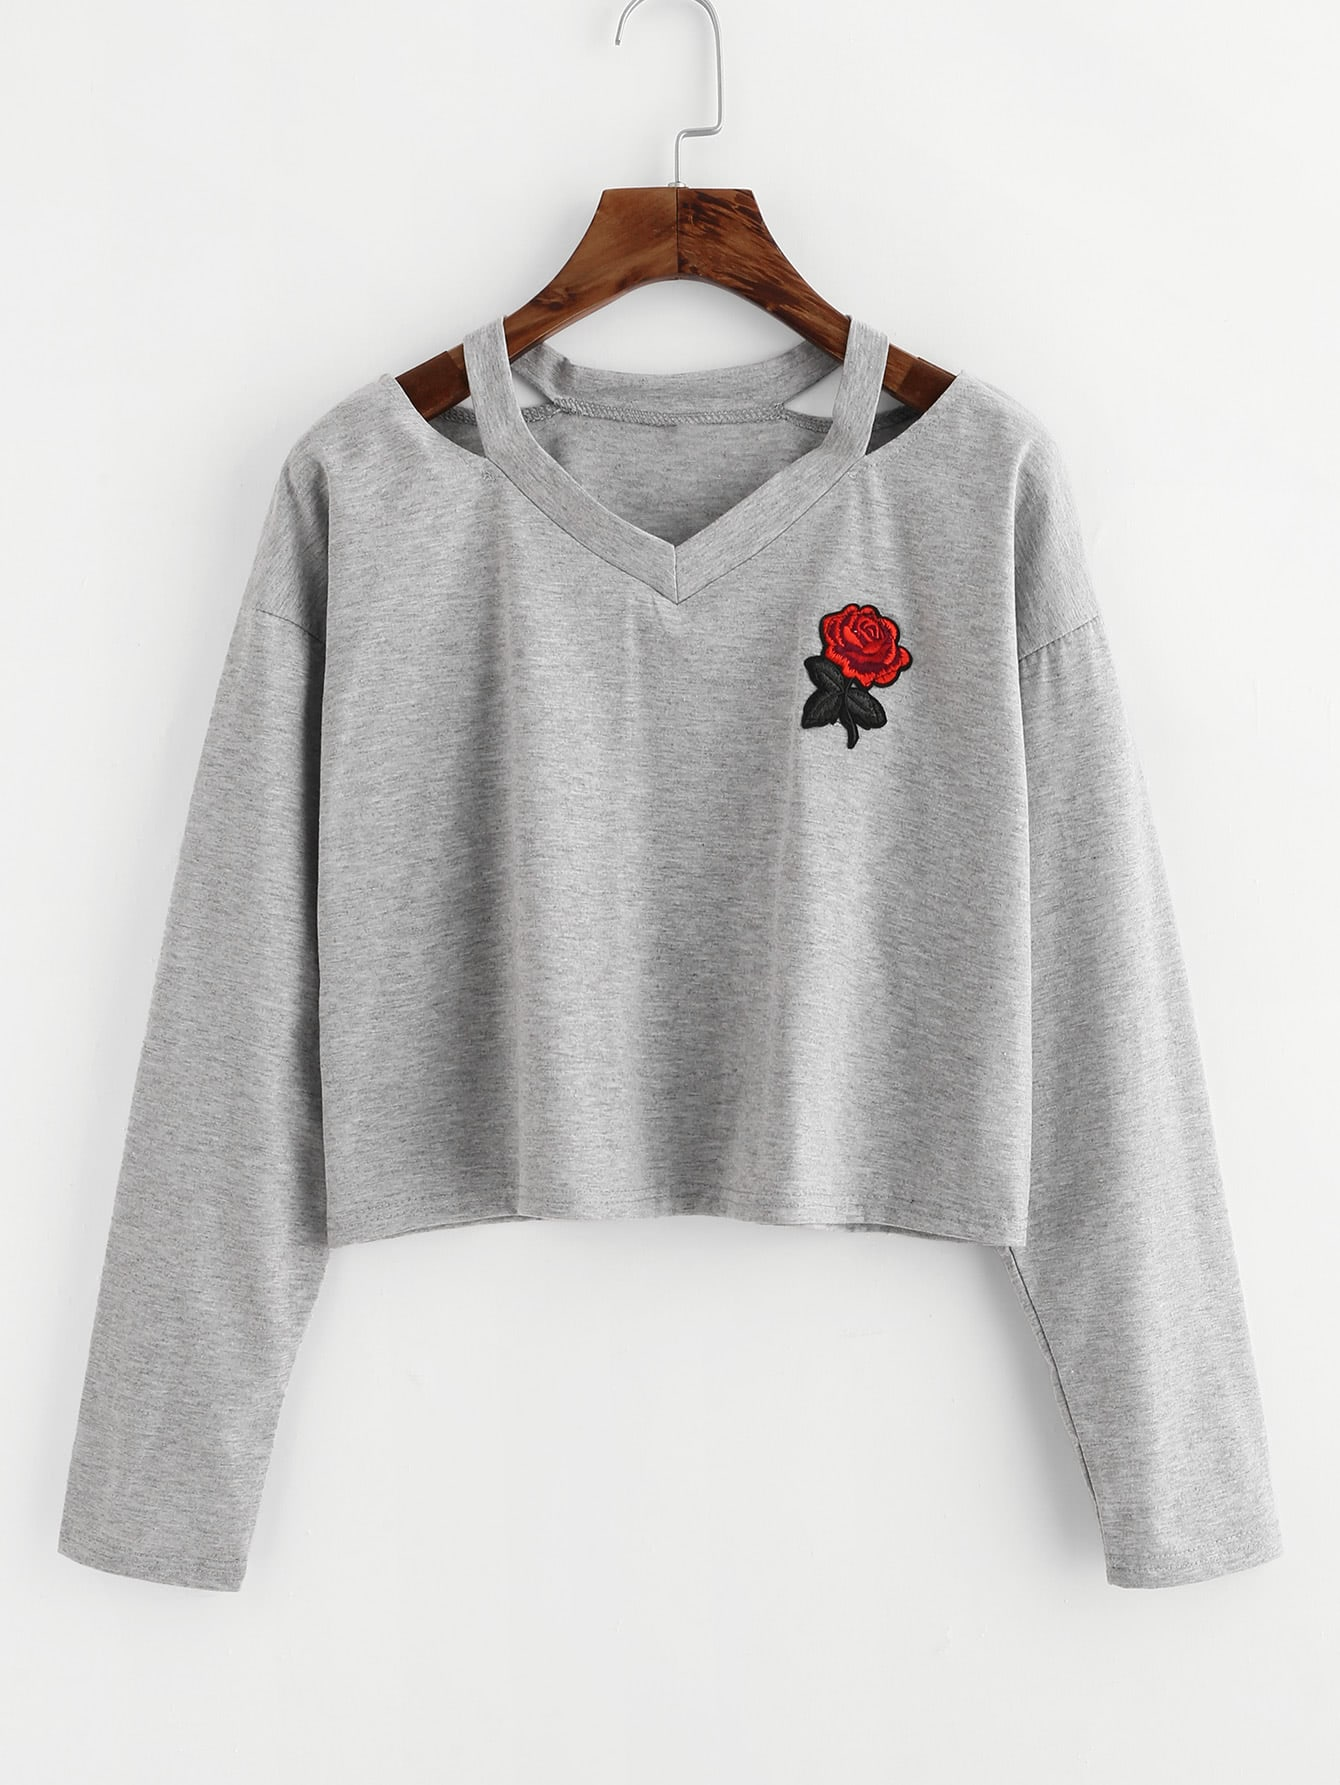 Cut Out Neck Rose Patch Marled Tee cut out neck rose patch crop tee